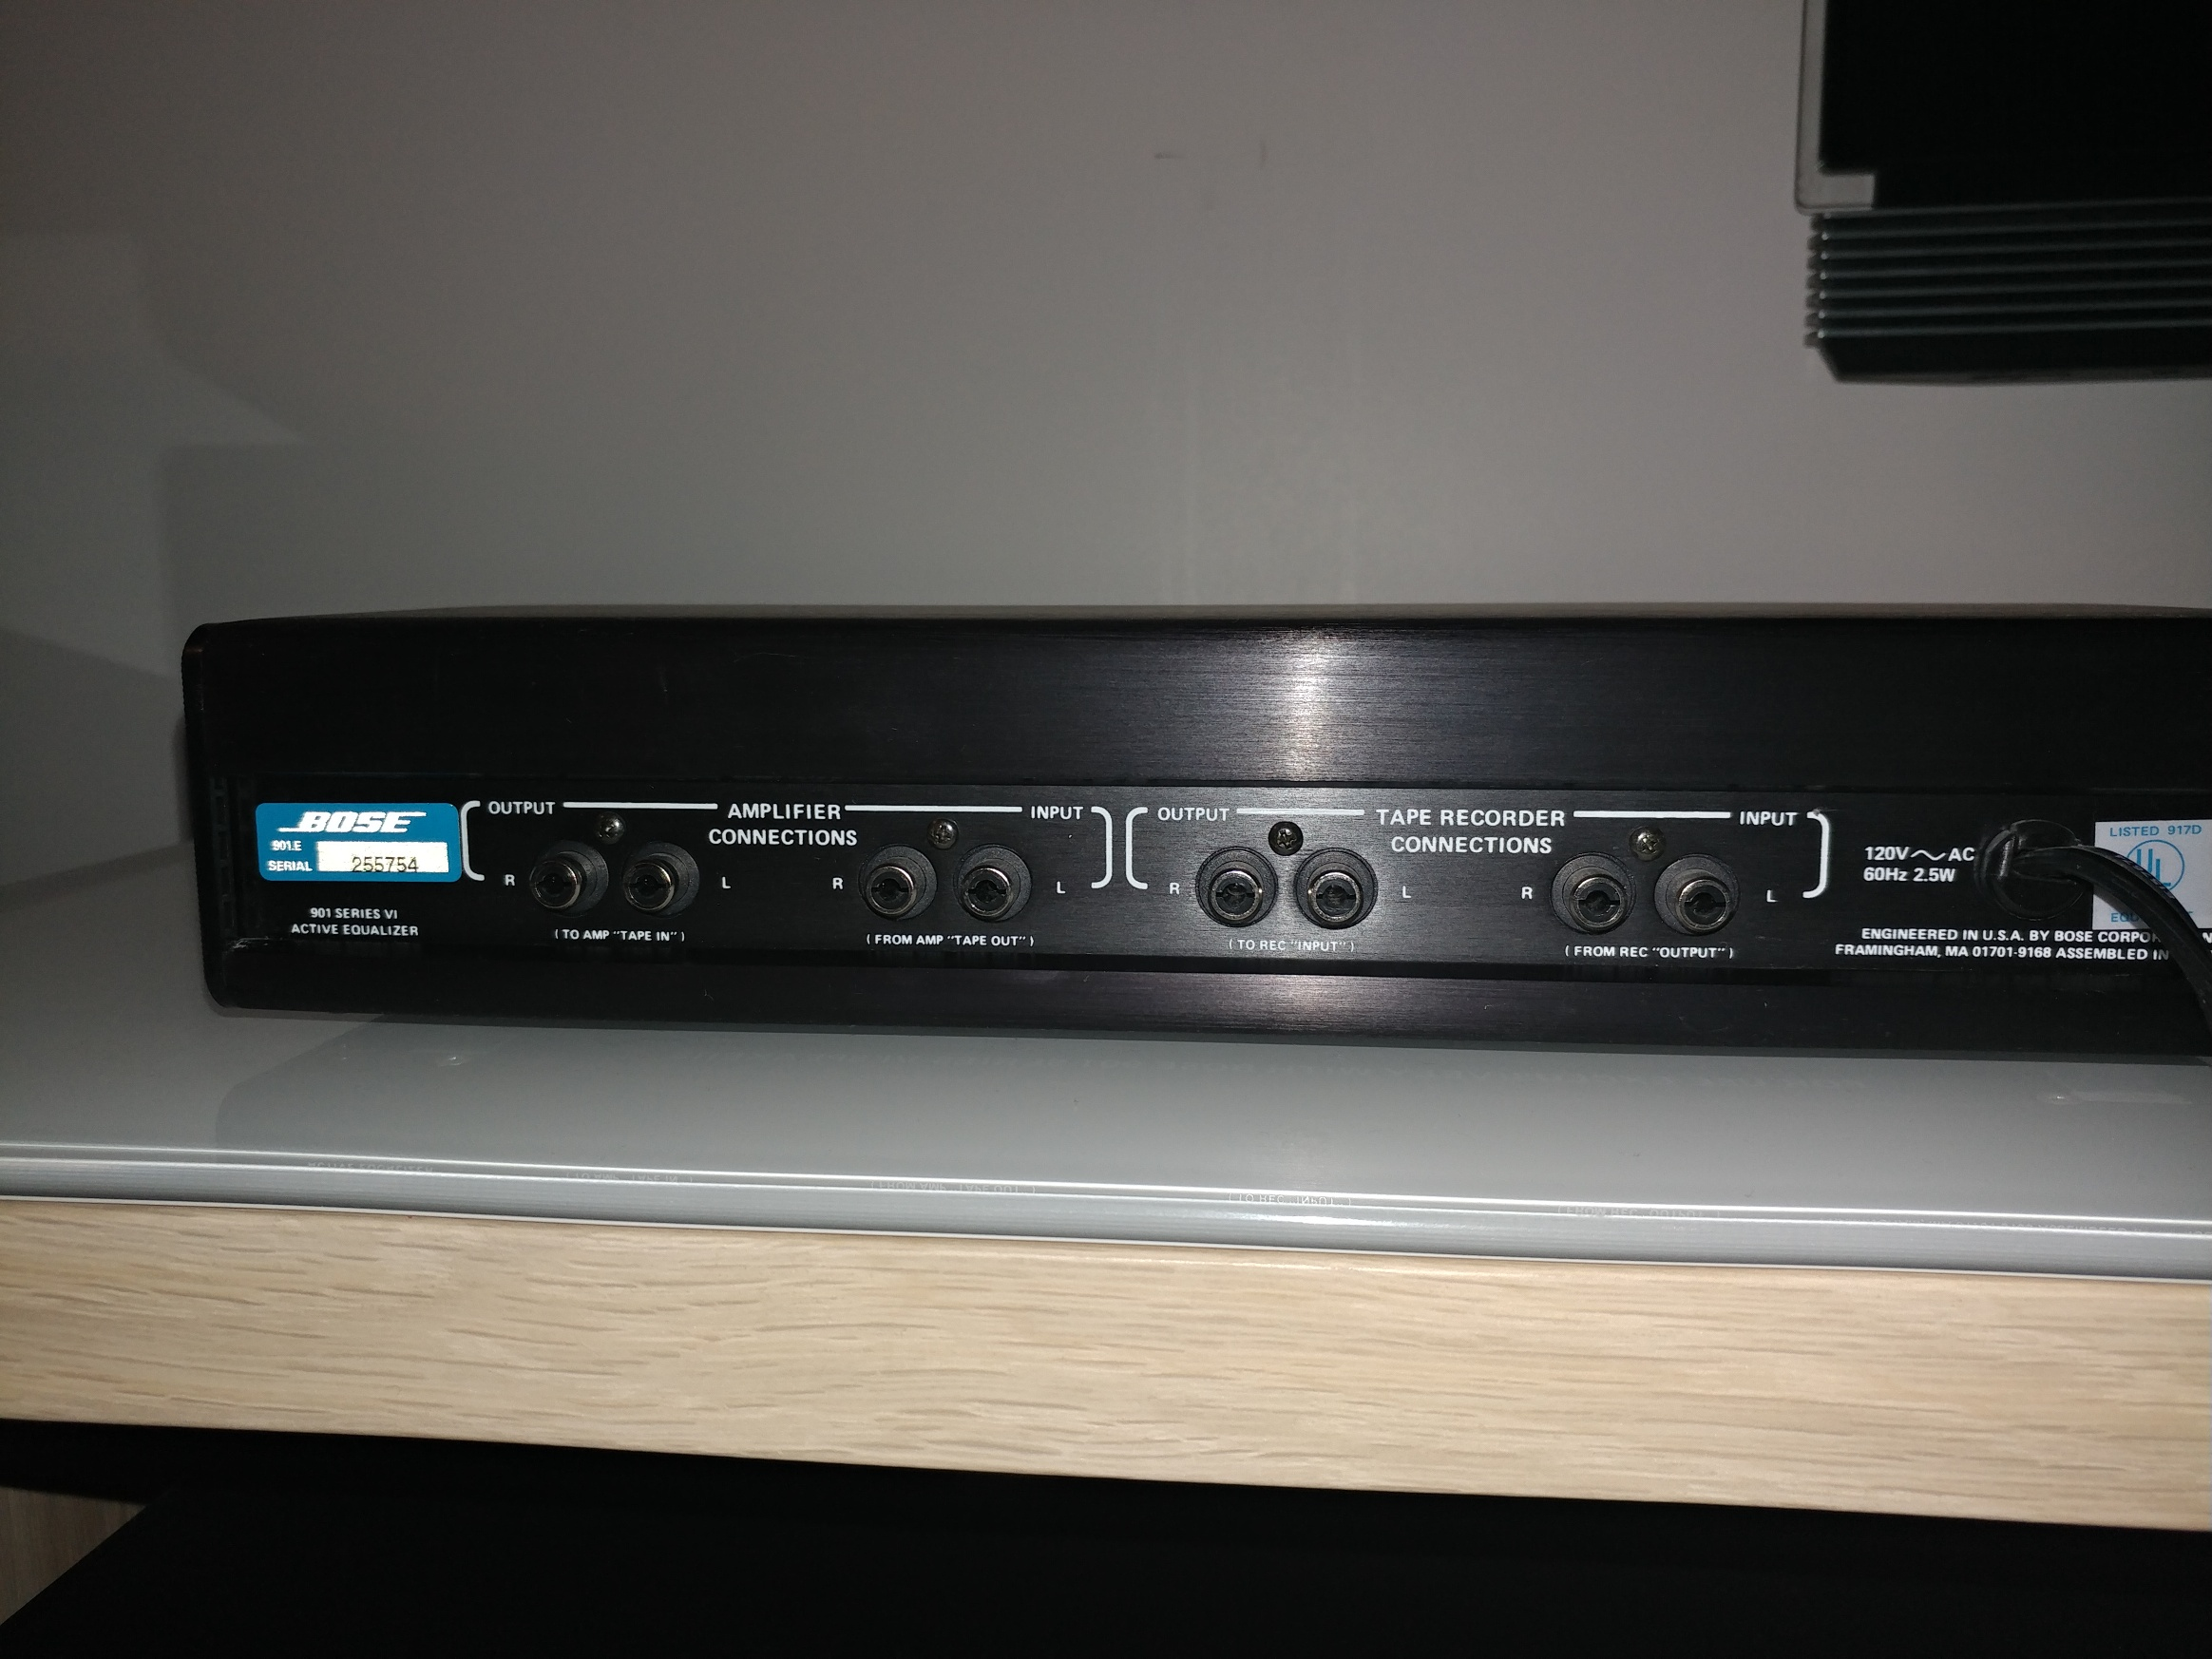 Bose 901 equalizer connections to a new reciever, Bose 901